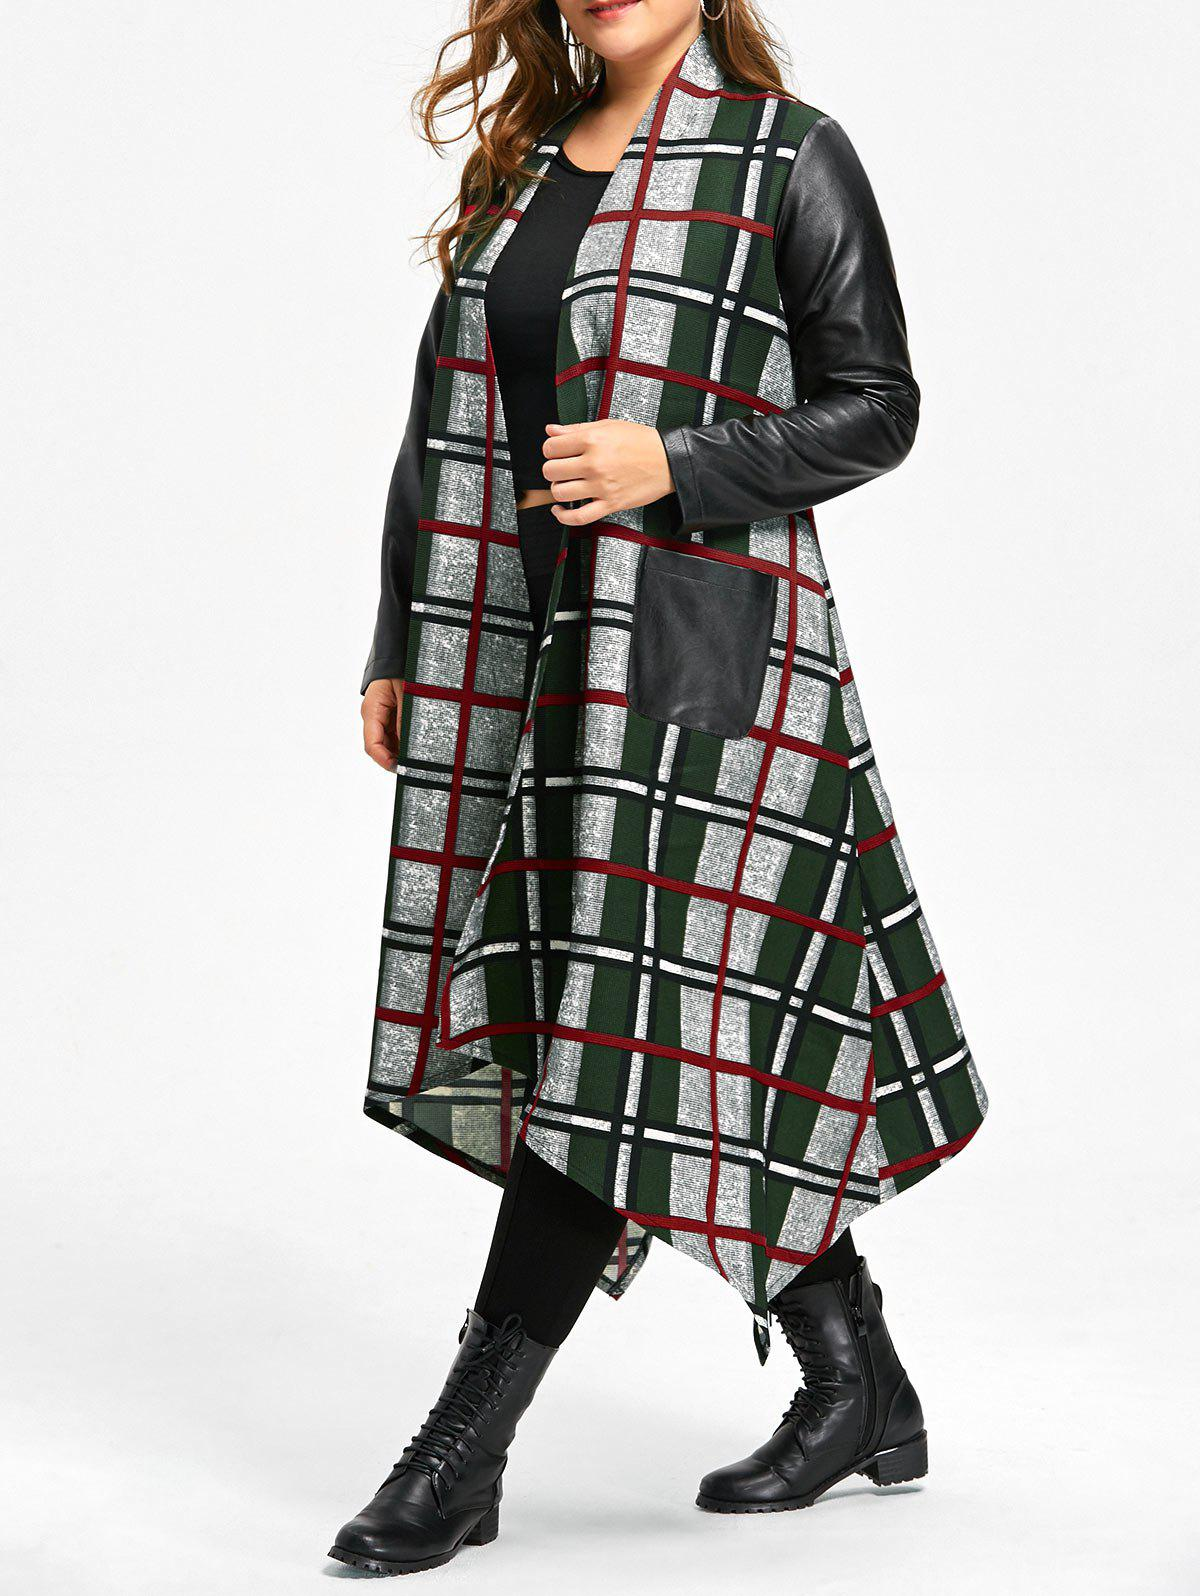 Plus Size Leather Insert Plaid Longline Asymmetrical CoatWOMEN<br><br>Size: 5XL; Color: COLORMIX; Clothes Type: Others; Material: Polyester; Type: Asymmetric Length; Shirt Length: Long; Sleeve Length: Full; Collar: Collarless; Pattern Type: Plaid; Style: Fashion; Season: Fall,Spring; Weight: 0.7000kg; Package Contents: 1 x Coat;